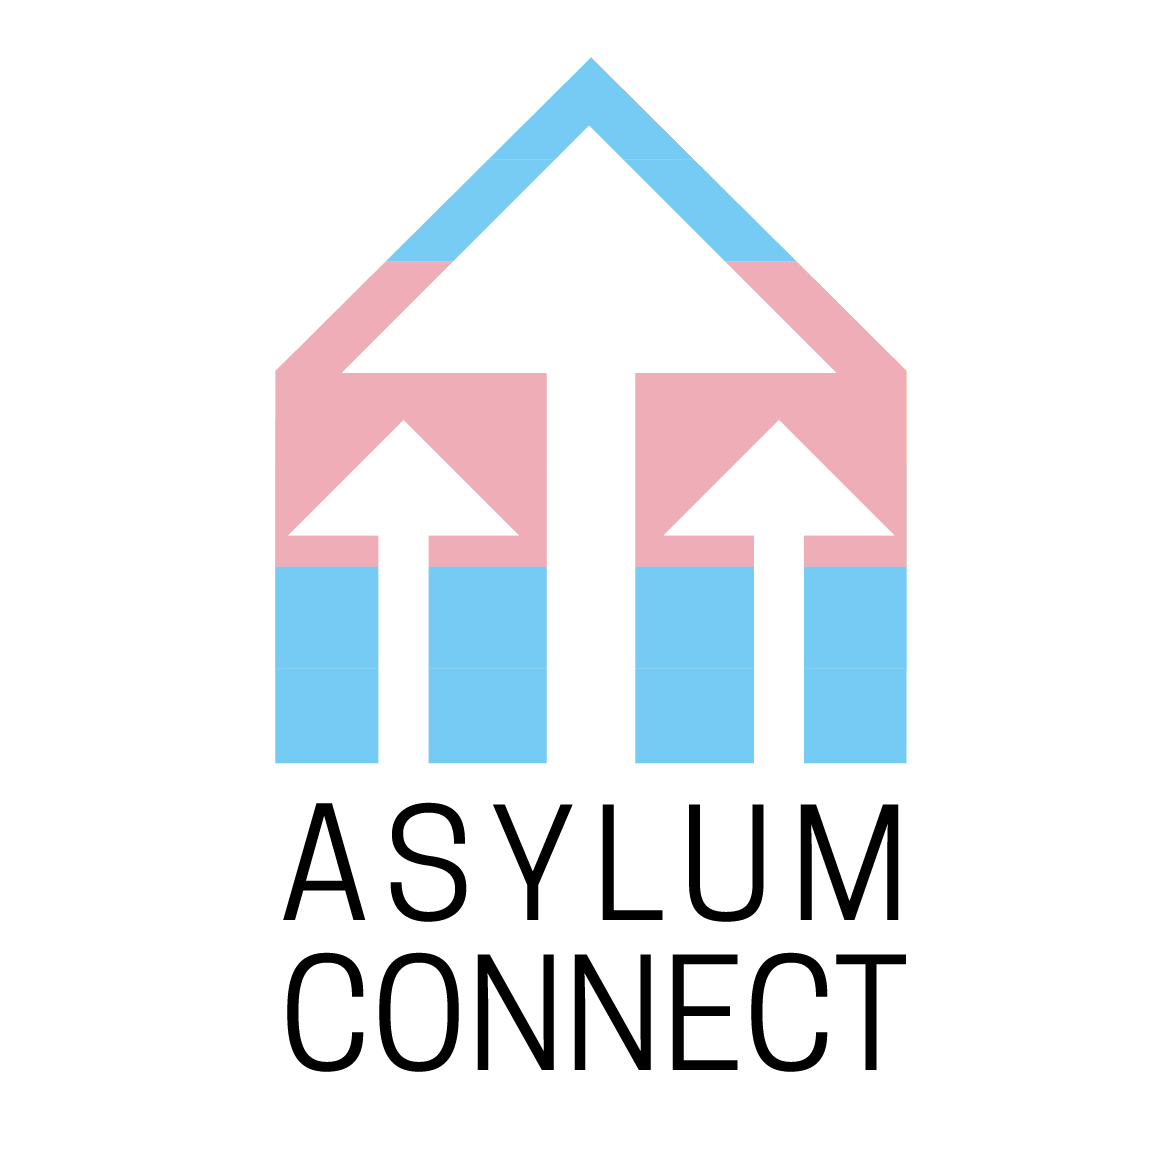 On March 31, 2018, AsylumConnect debuted a temporary logo in honor of International Trans Day of Visibility.